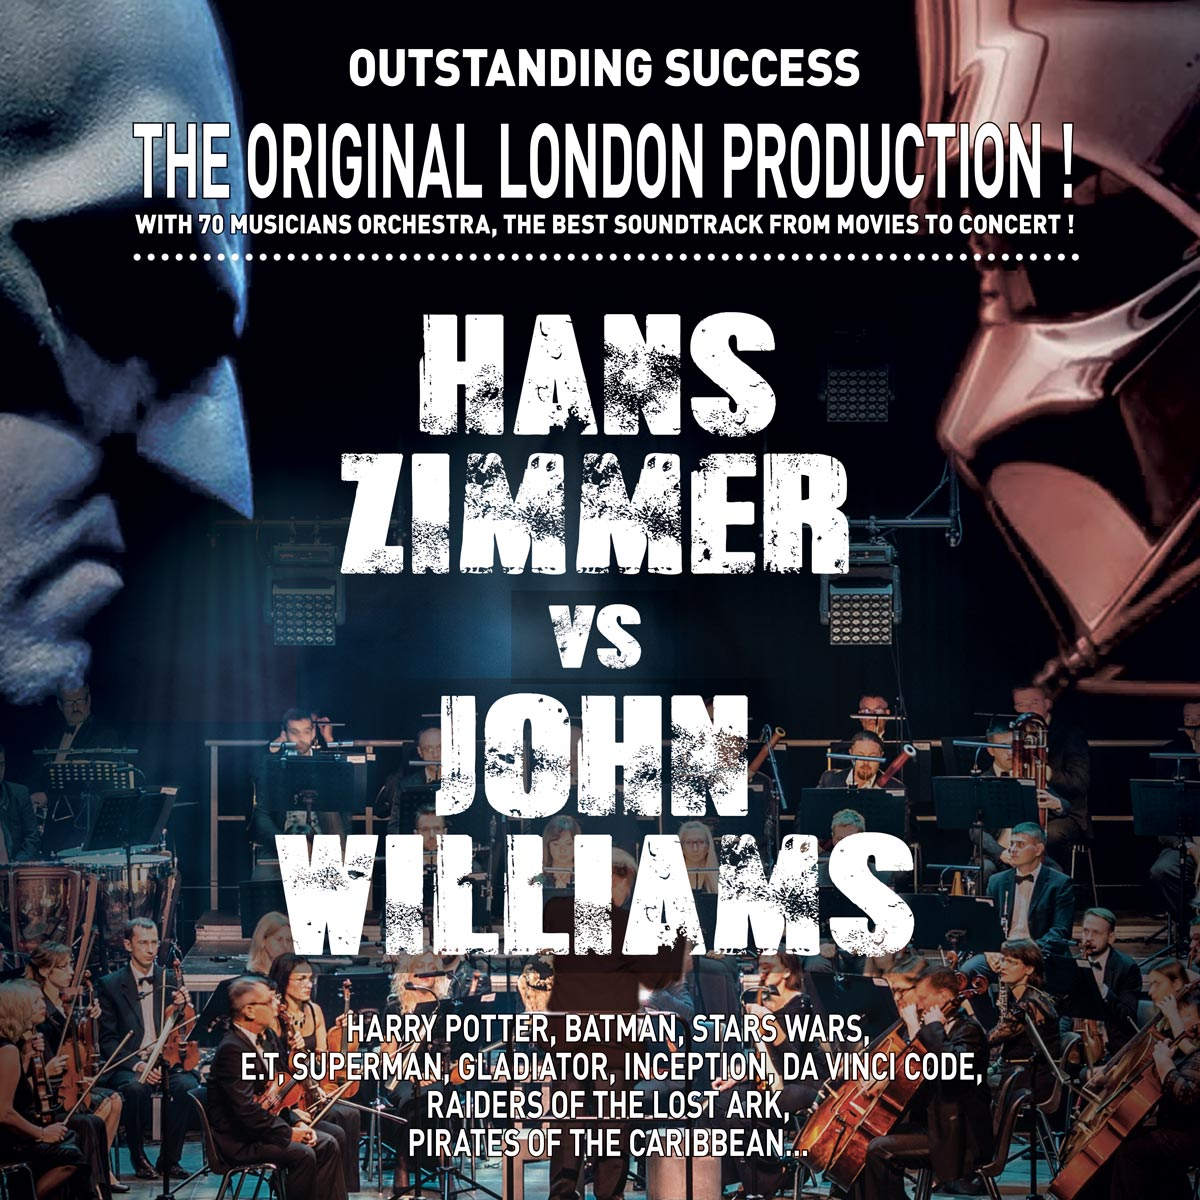 The Original London Production! Hans Zimmer vs John Williams, 70 musicians orchestra, the beste music from movies in concert; Outstanding success,